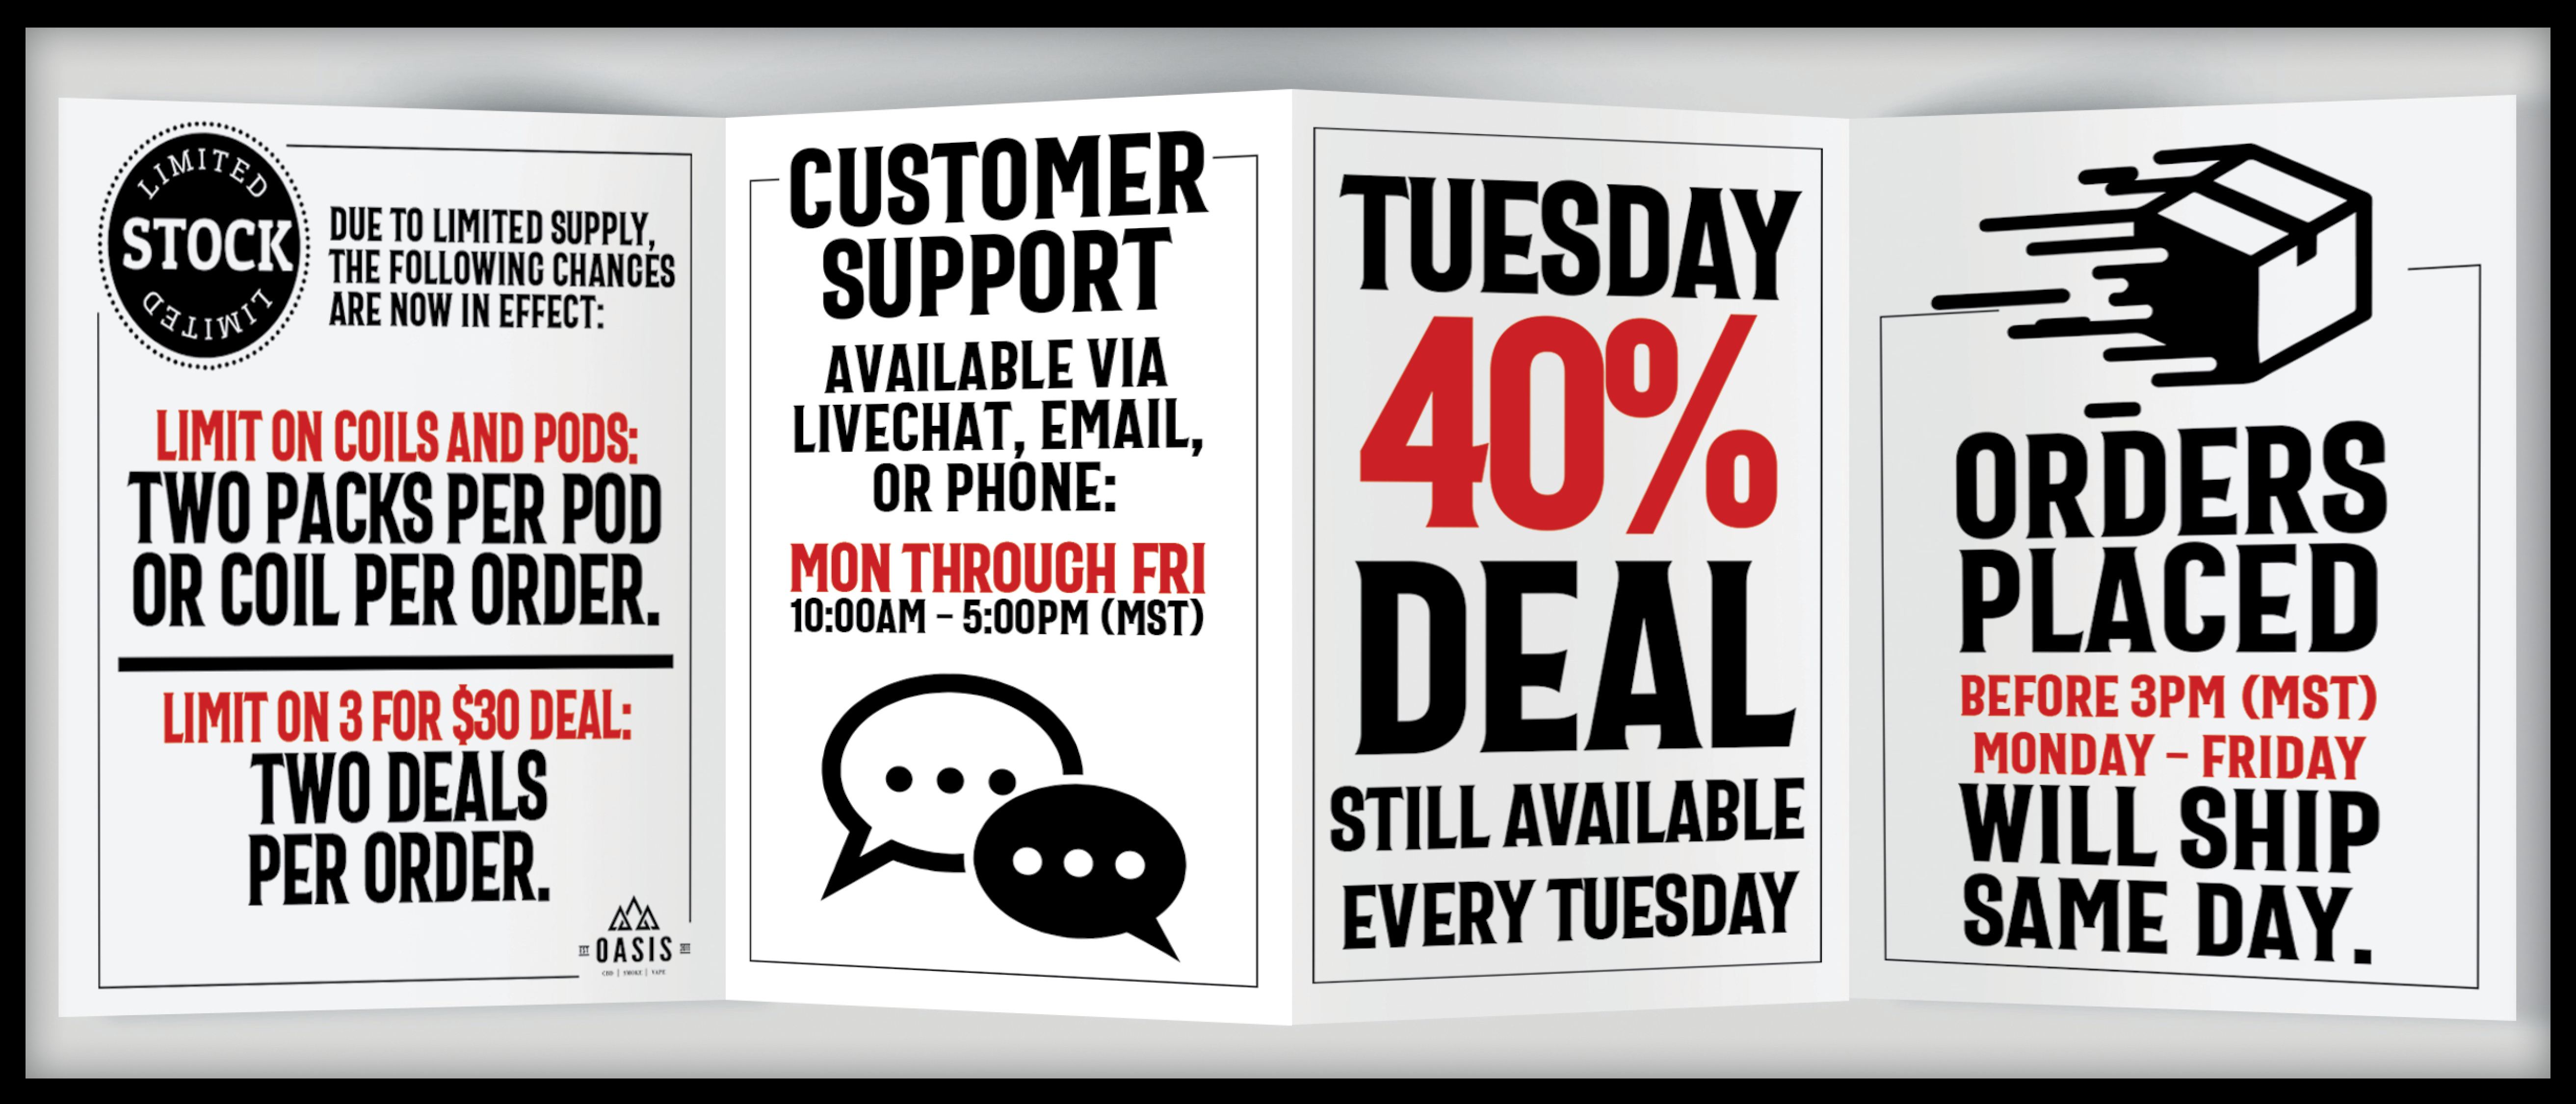 Limit on coils and pods two per order per coil. Limit on 3 for $30 deal two deals per order. Customer support available Monday through Friday 10am through 5pm. Tuesday 40% Deal still available. Order placed before 3pm ship same day.